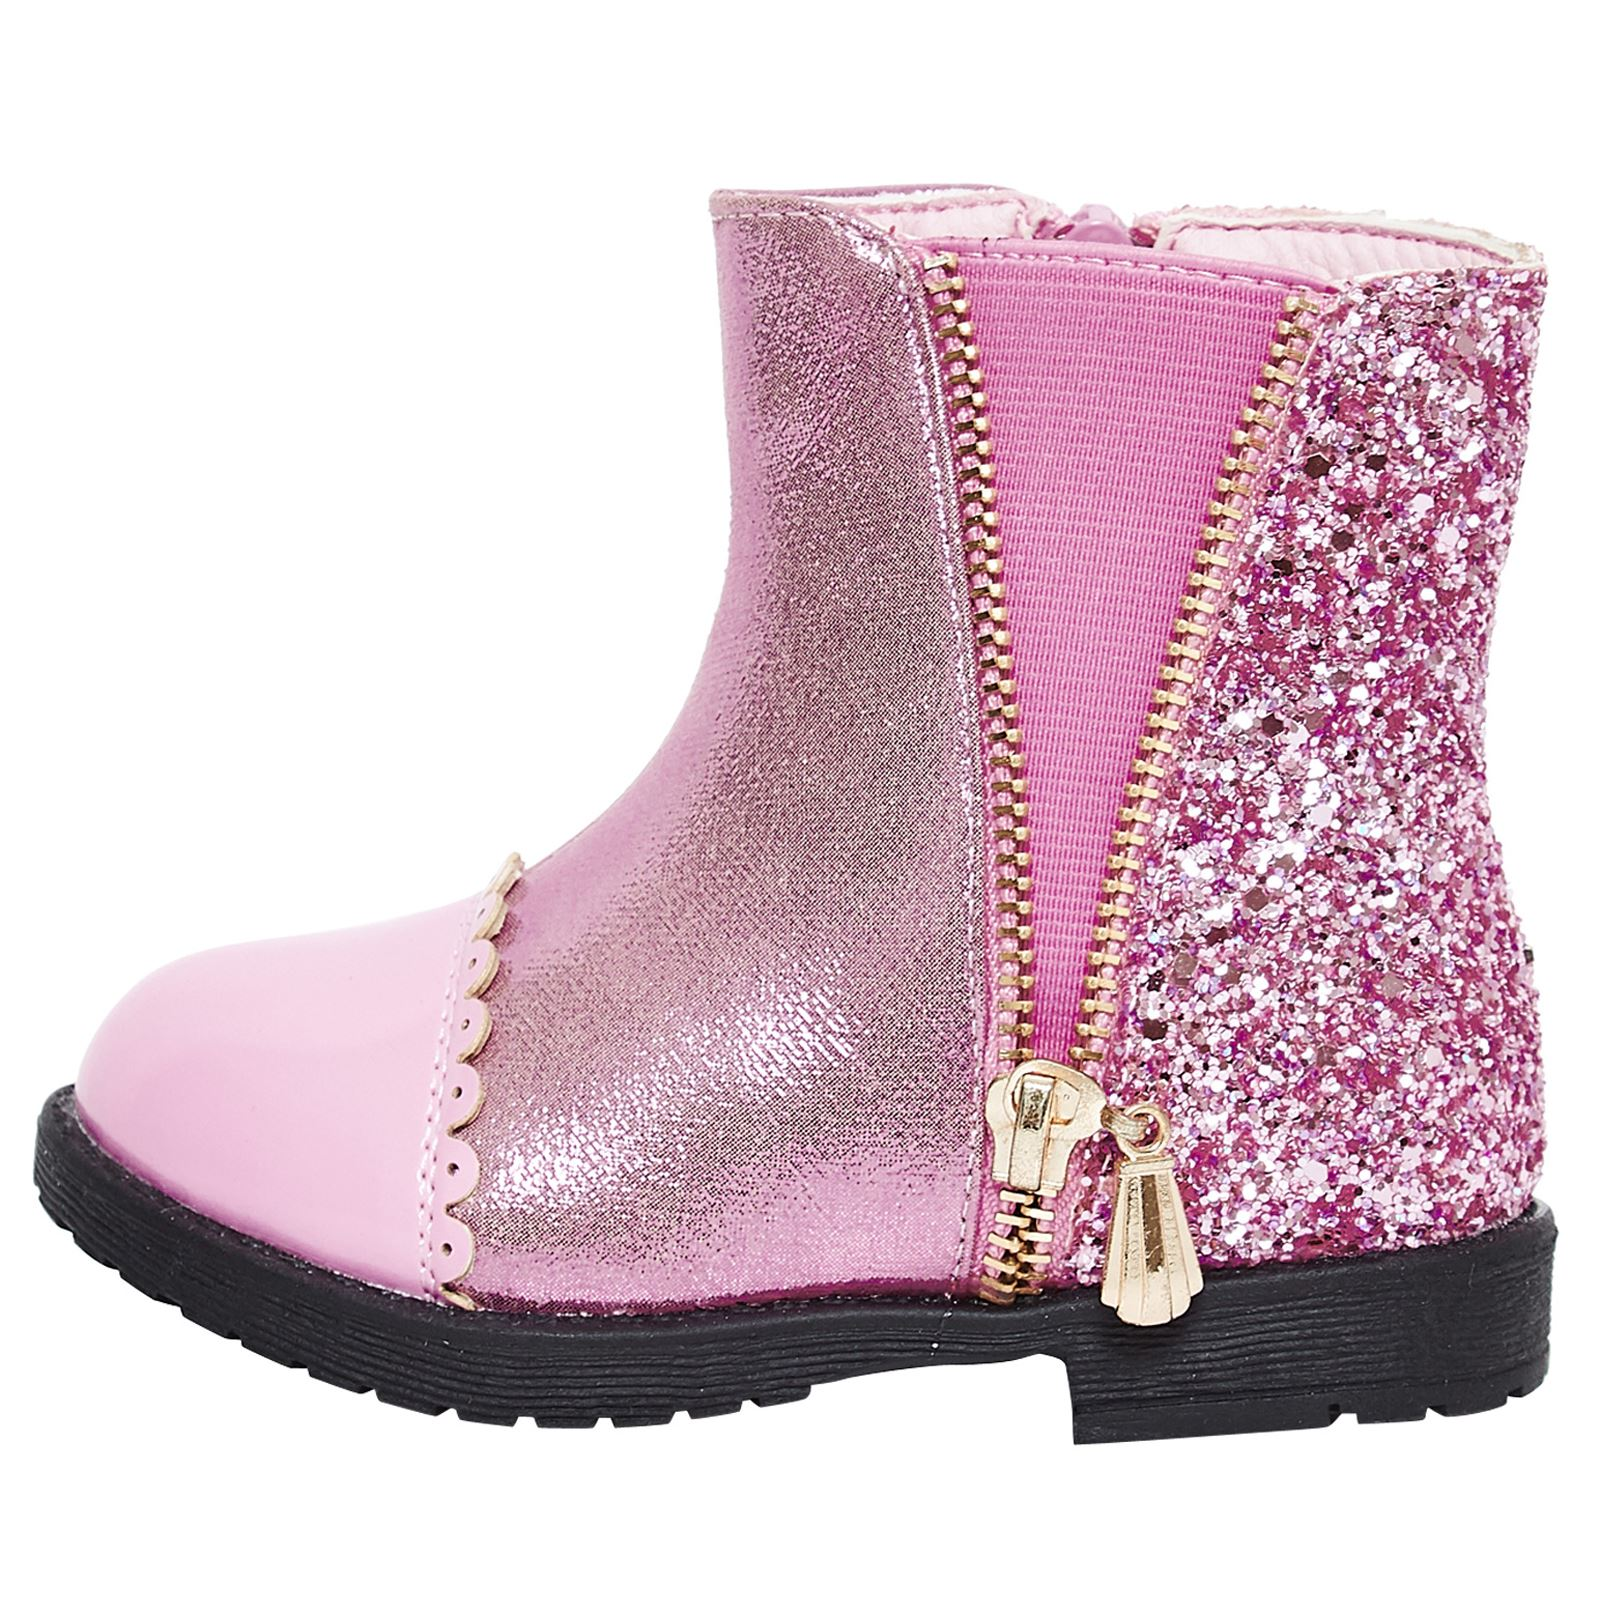 Neuf-Filles-Chaussures-Enfants-Bottines-Fermeture-Eclair-paillete-Casual-Style-Taille